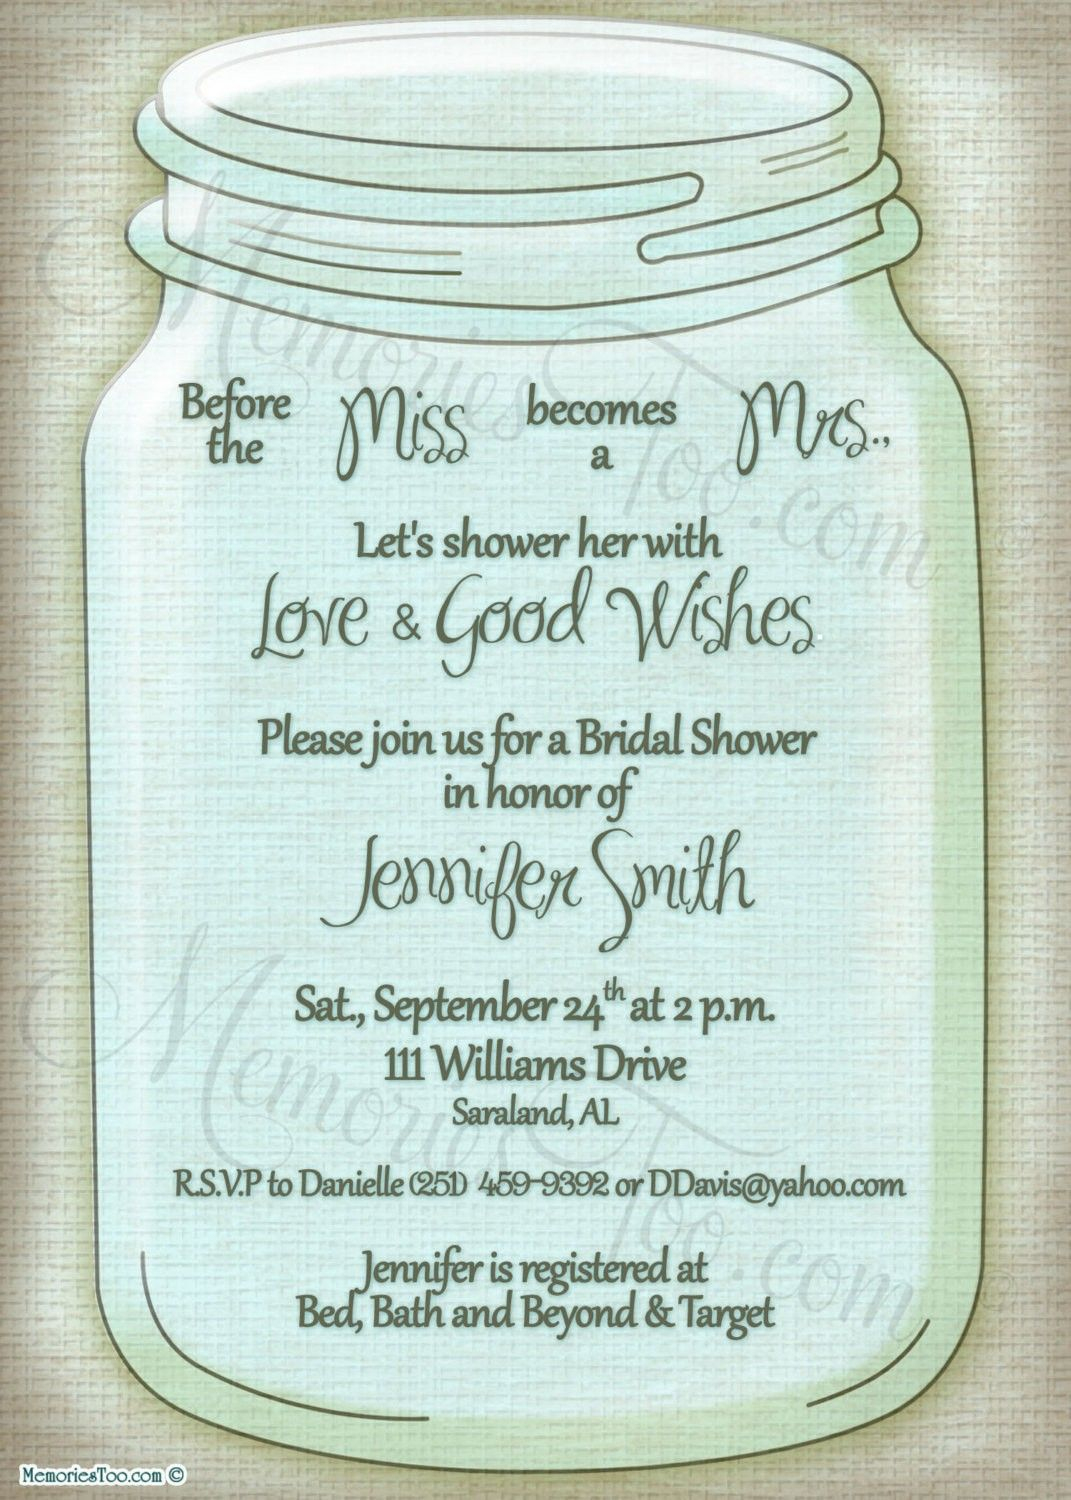 Free Printable Wedding Invitations Mason Jars | Rustic Wedding Ideas - Free Mason Jar Wedding Invitation Printable Templates